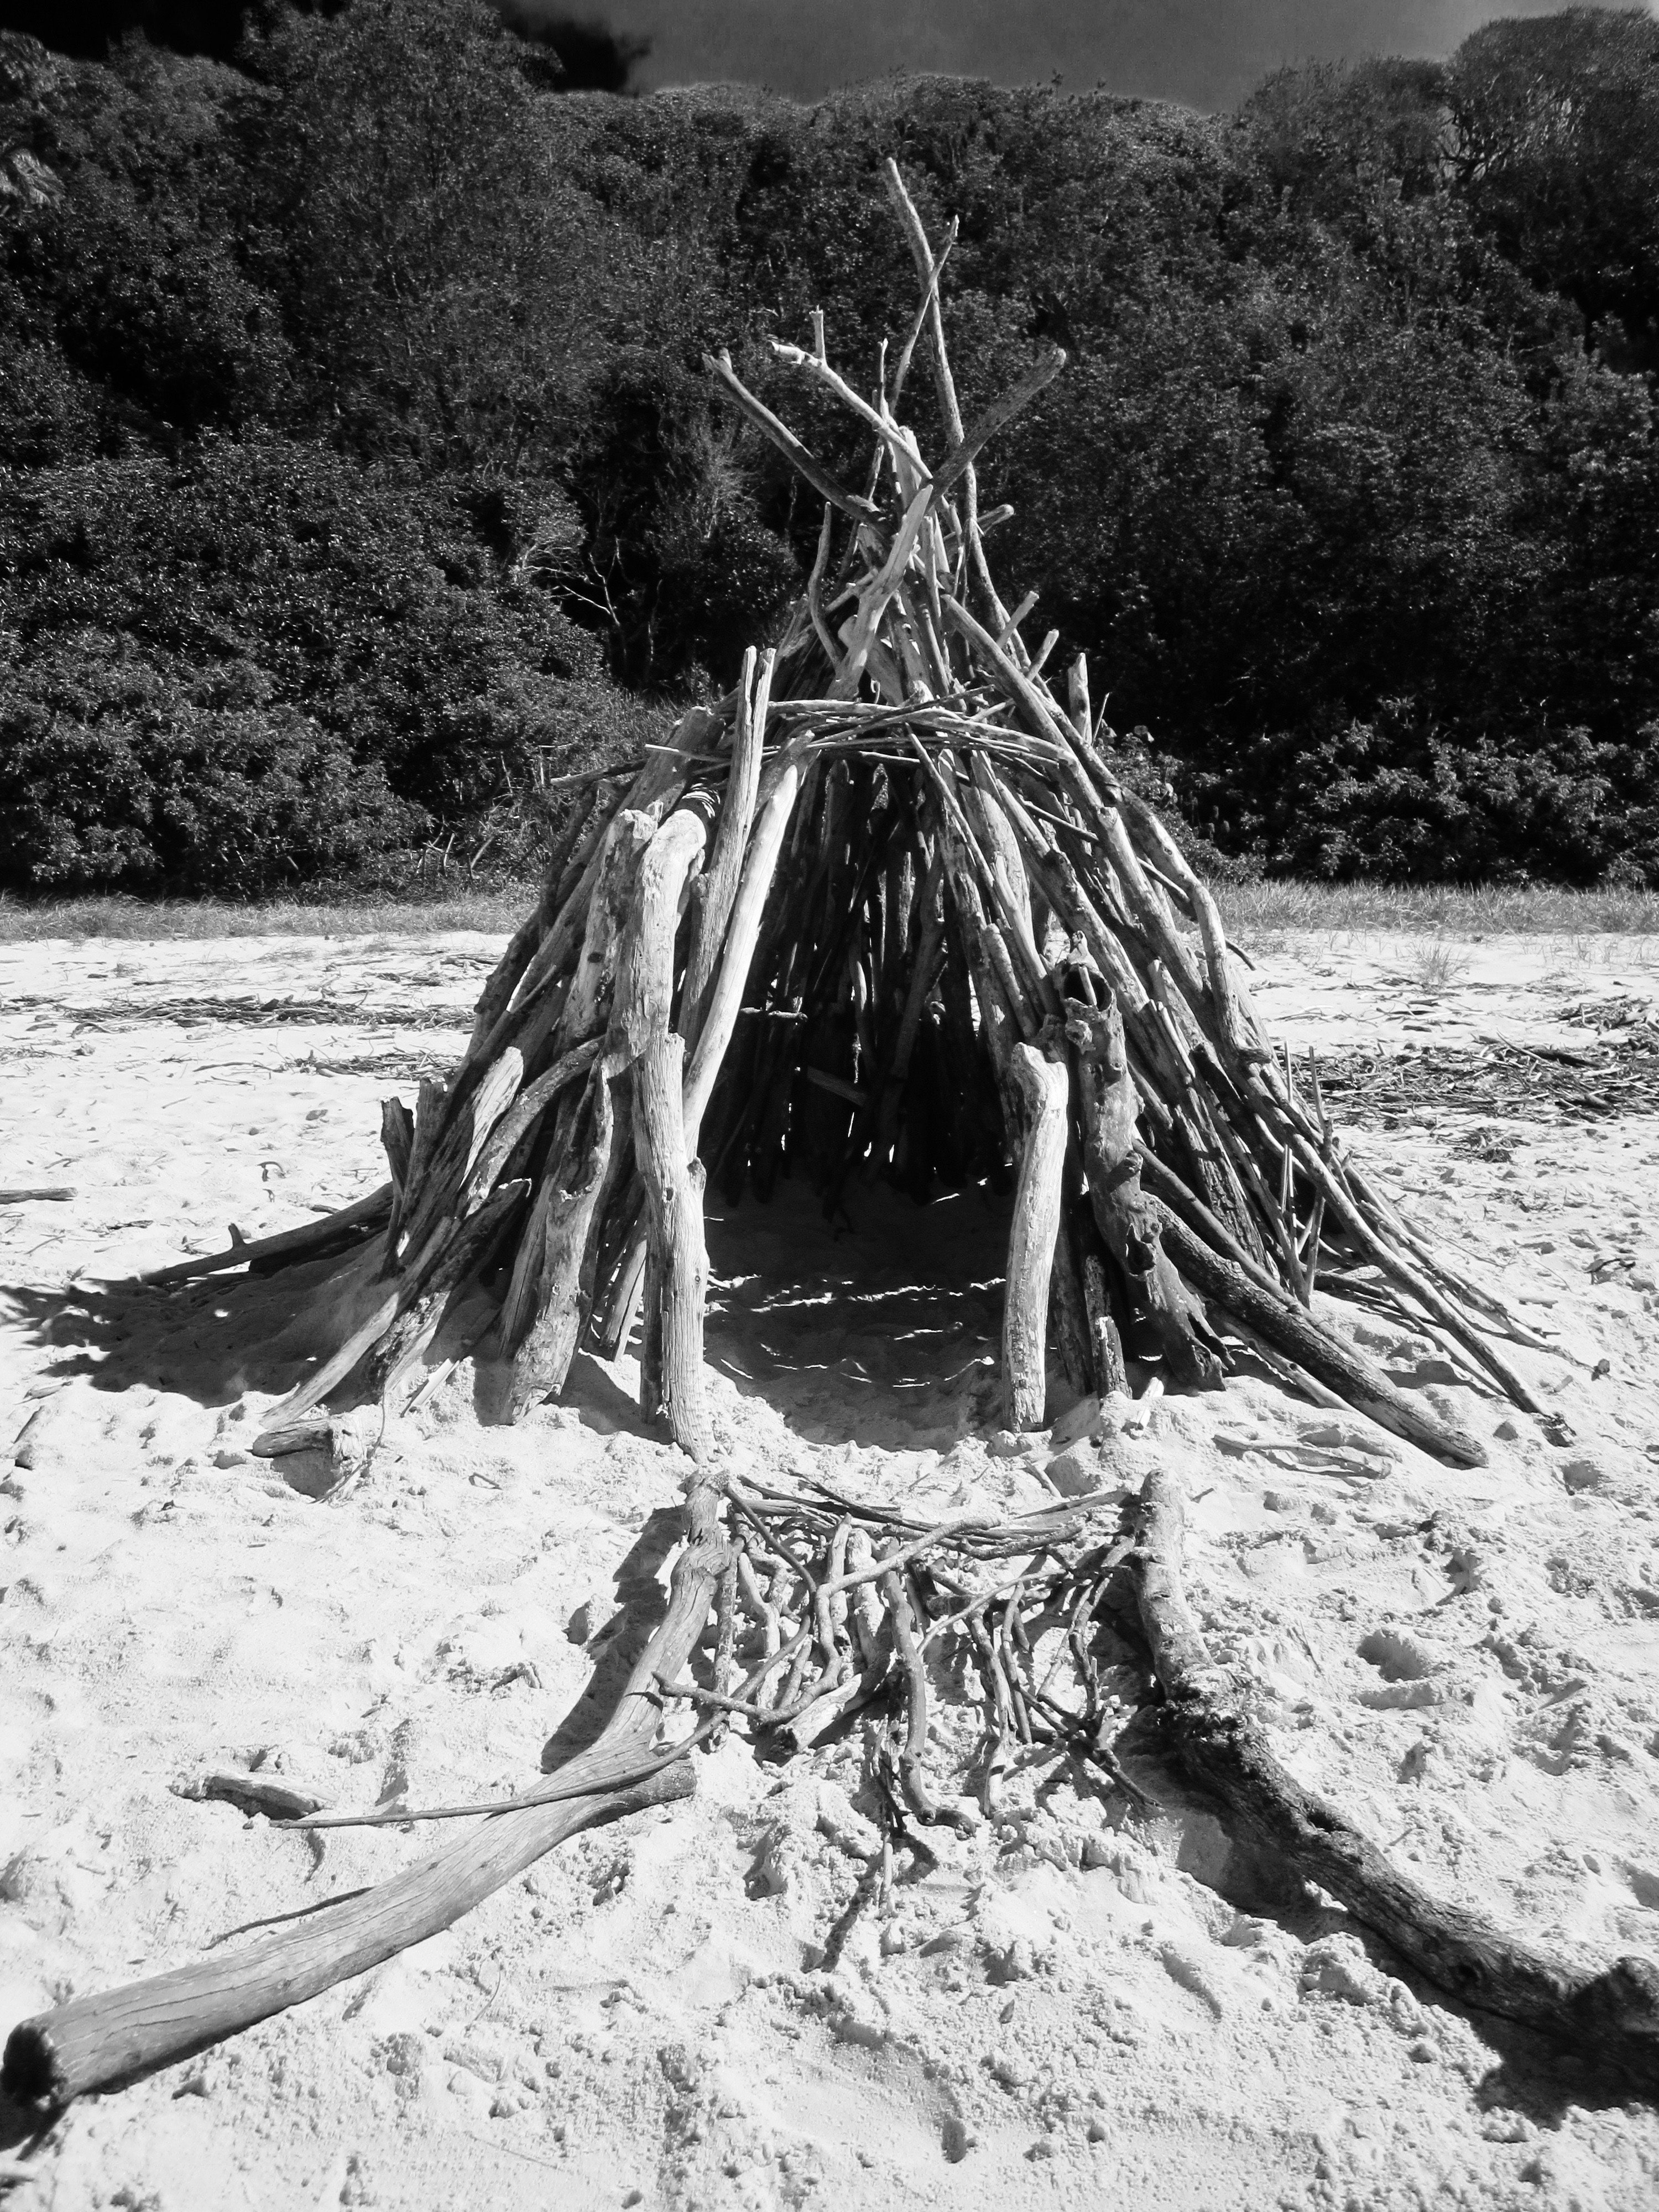 Twig tent on seashore photo